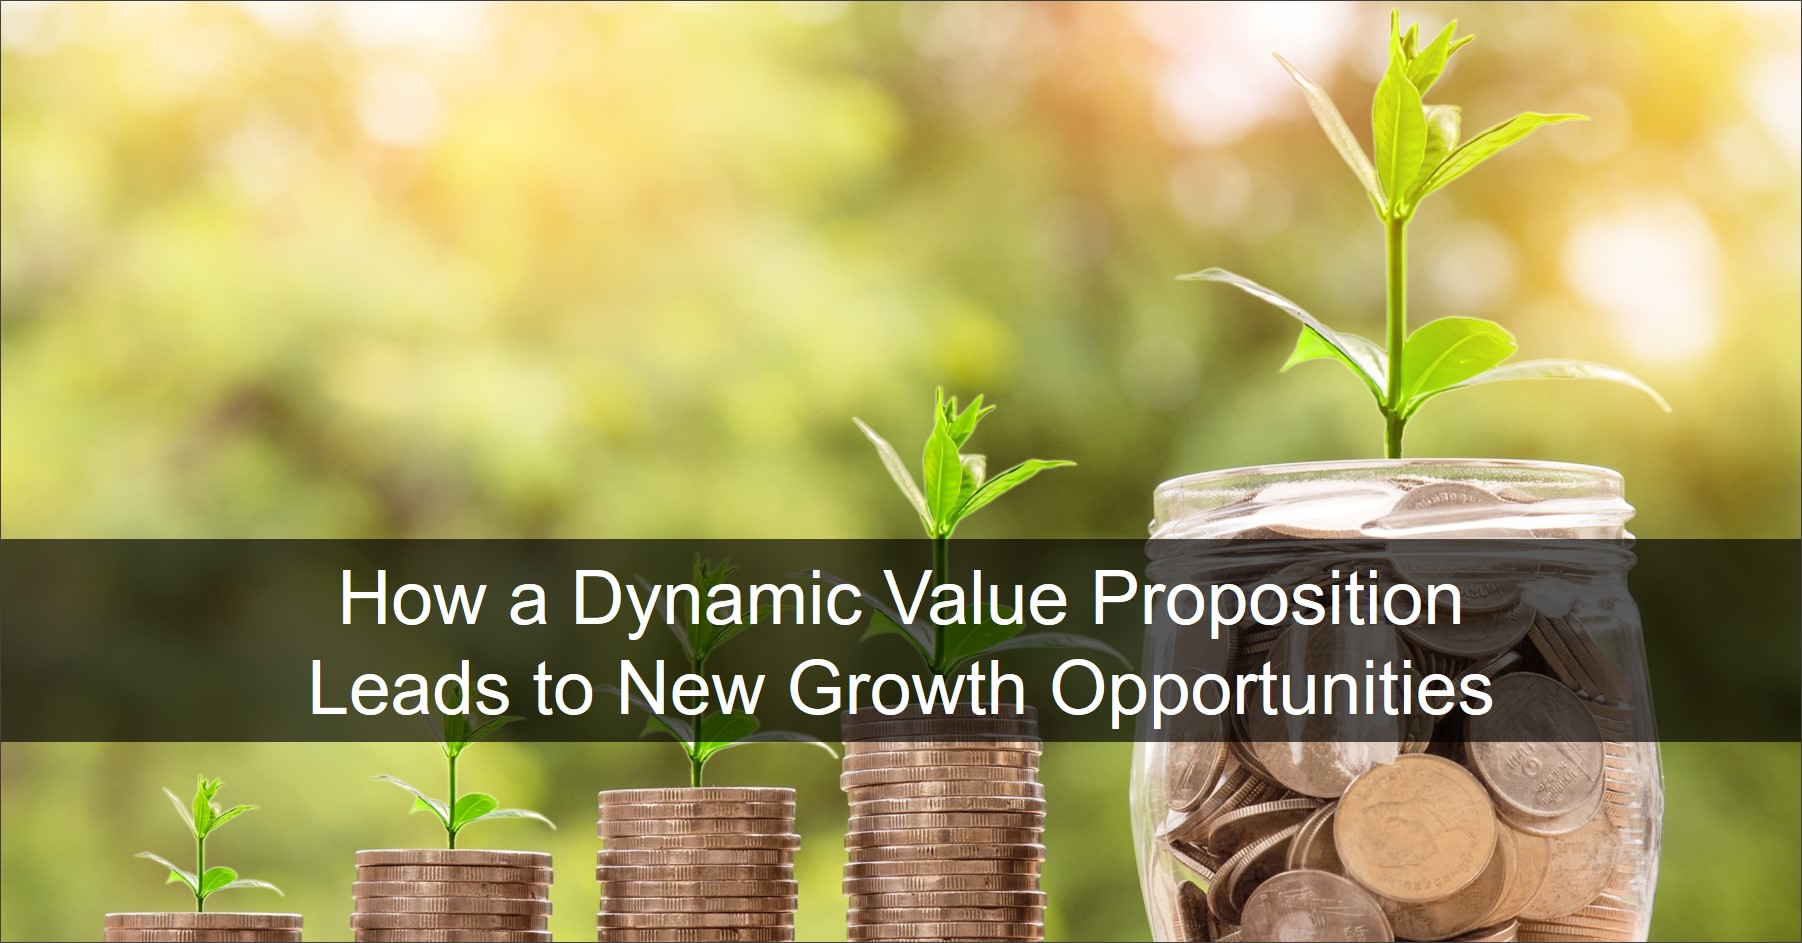 Value propositions provide a value map at the market segment, company and individual role level